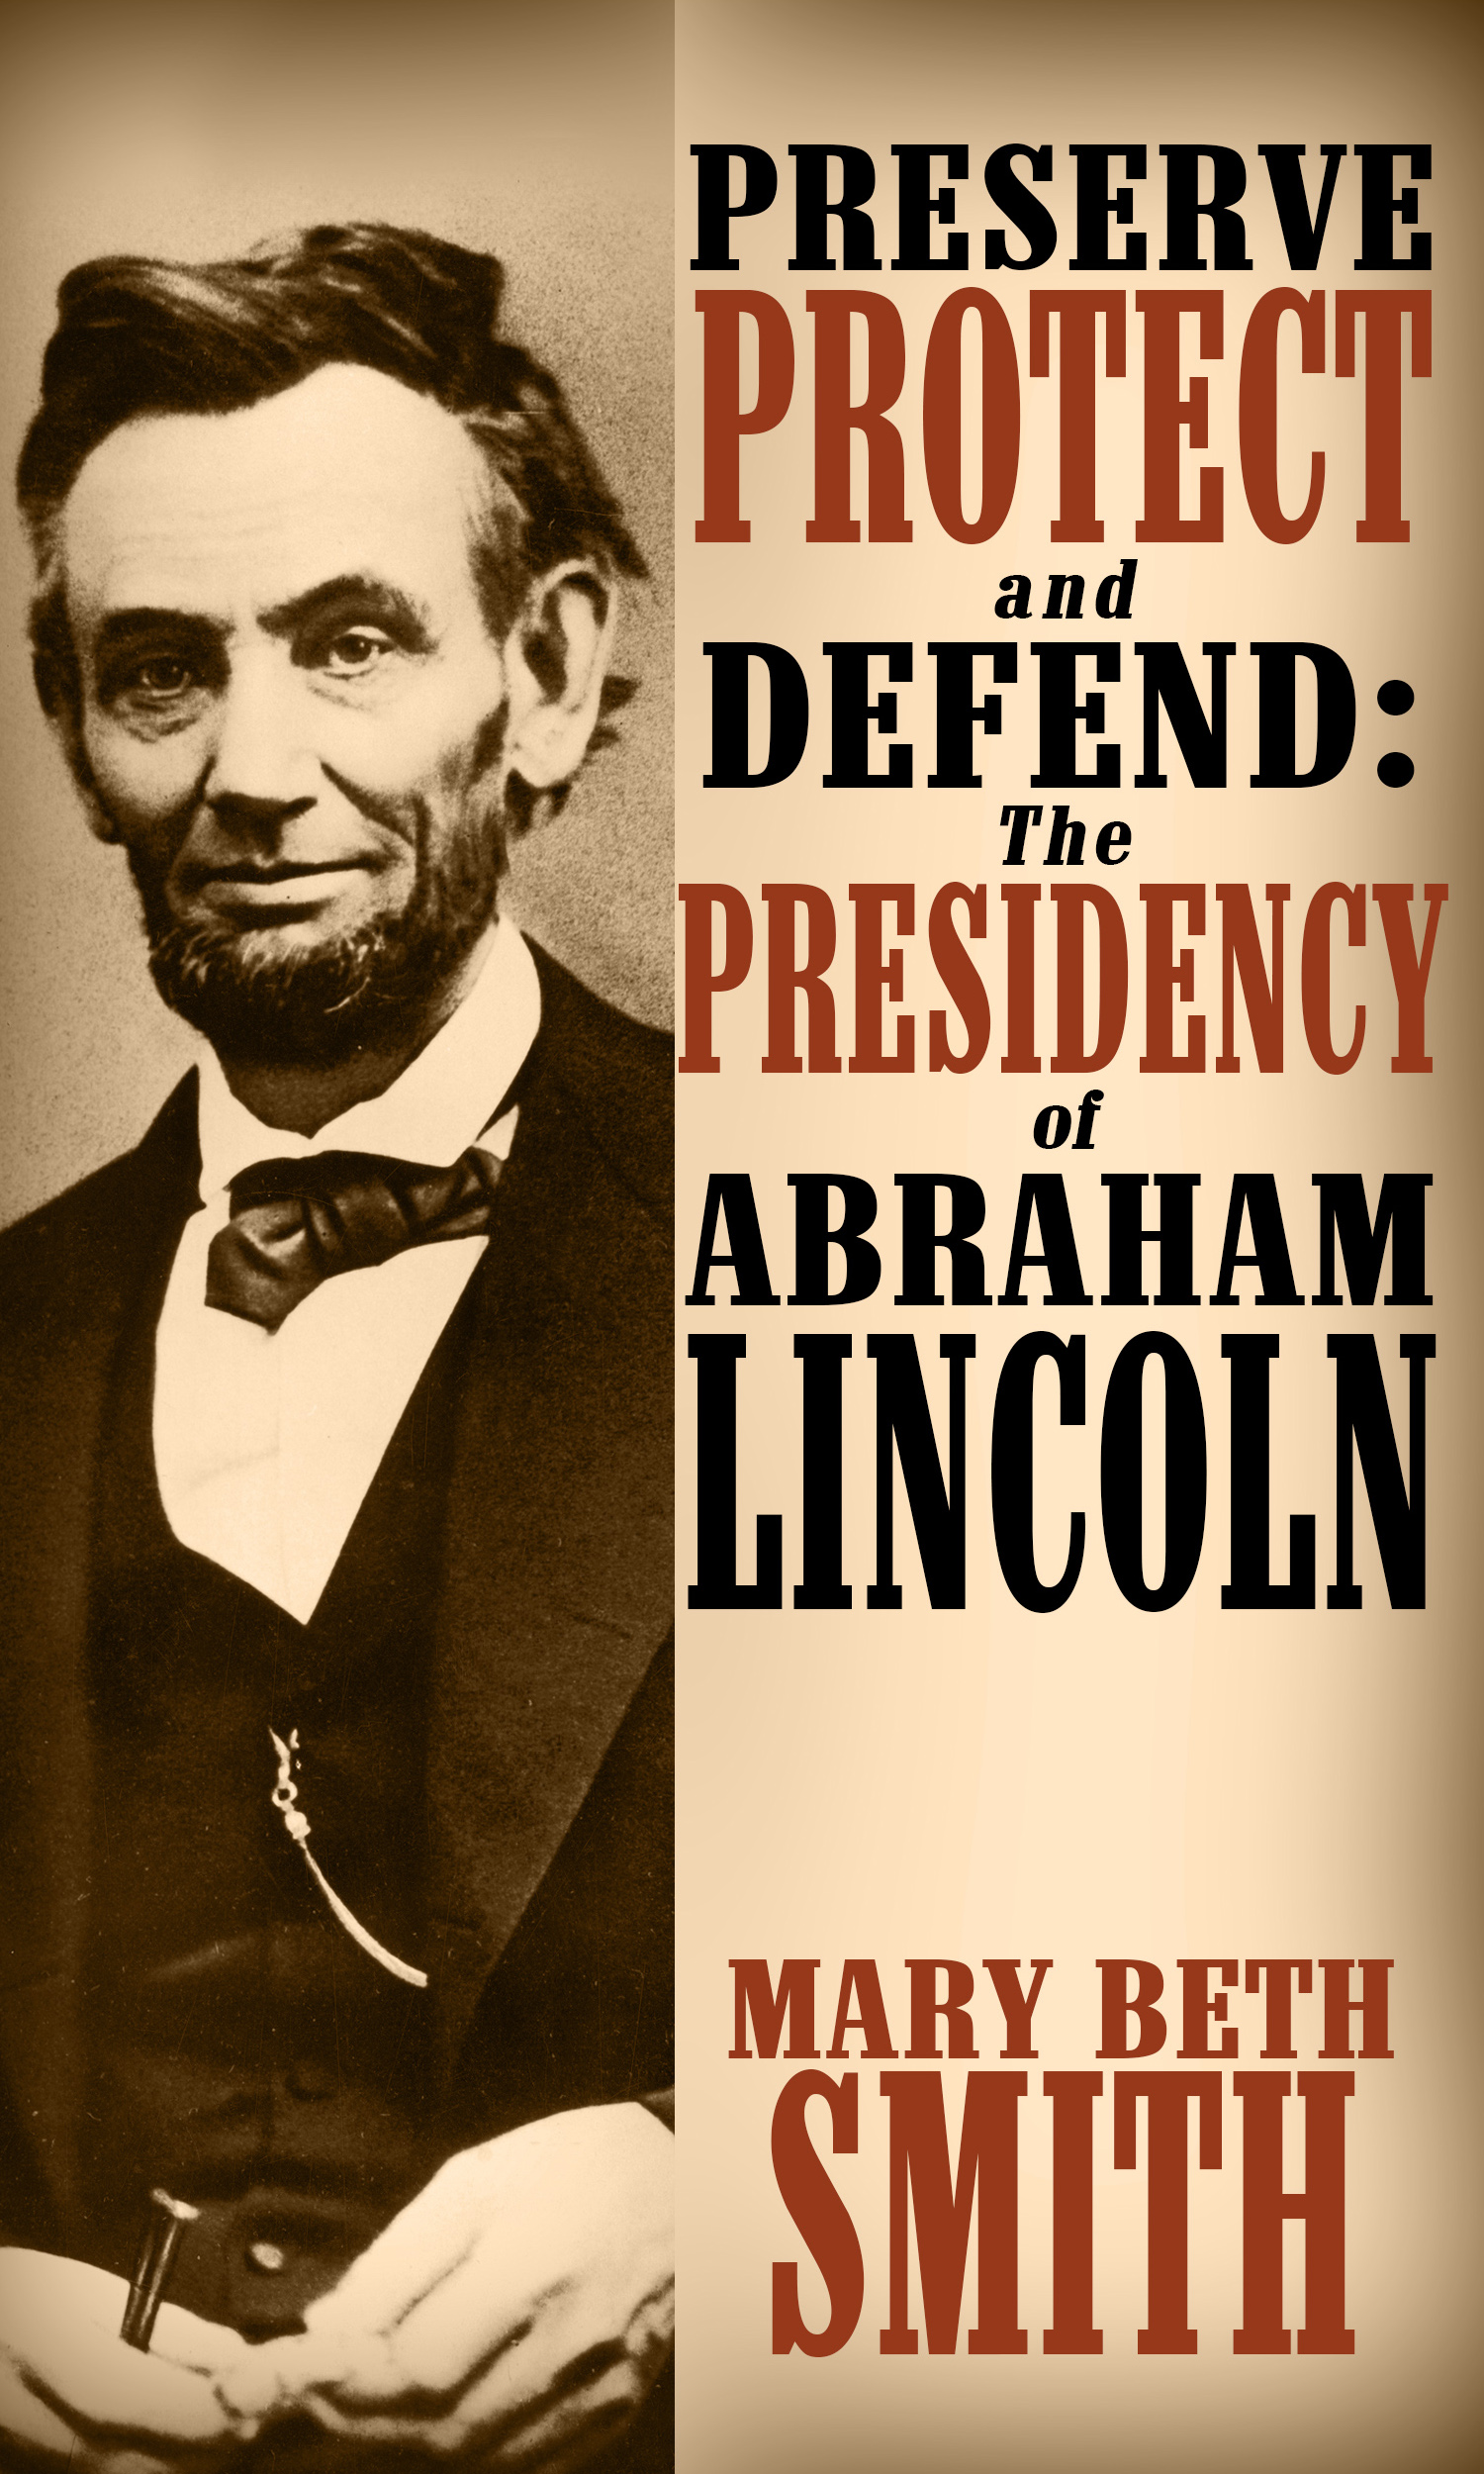 Preserve Protect and Defend: The Presidency of Abraham Lincoln, by Mary Beth Smith